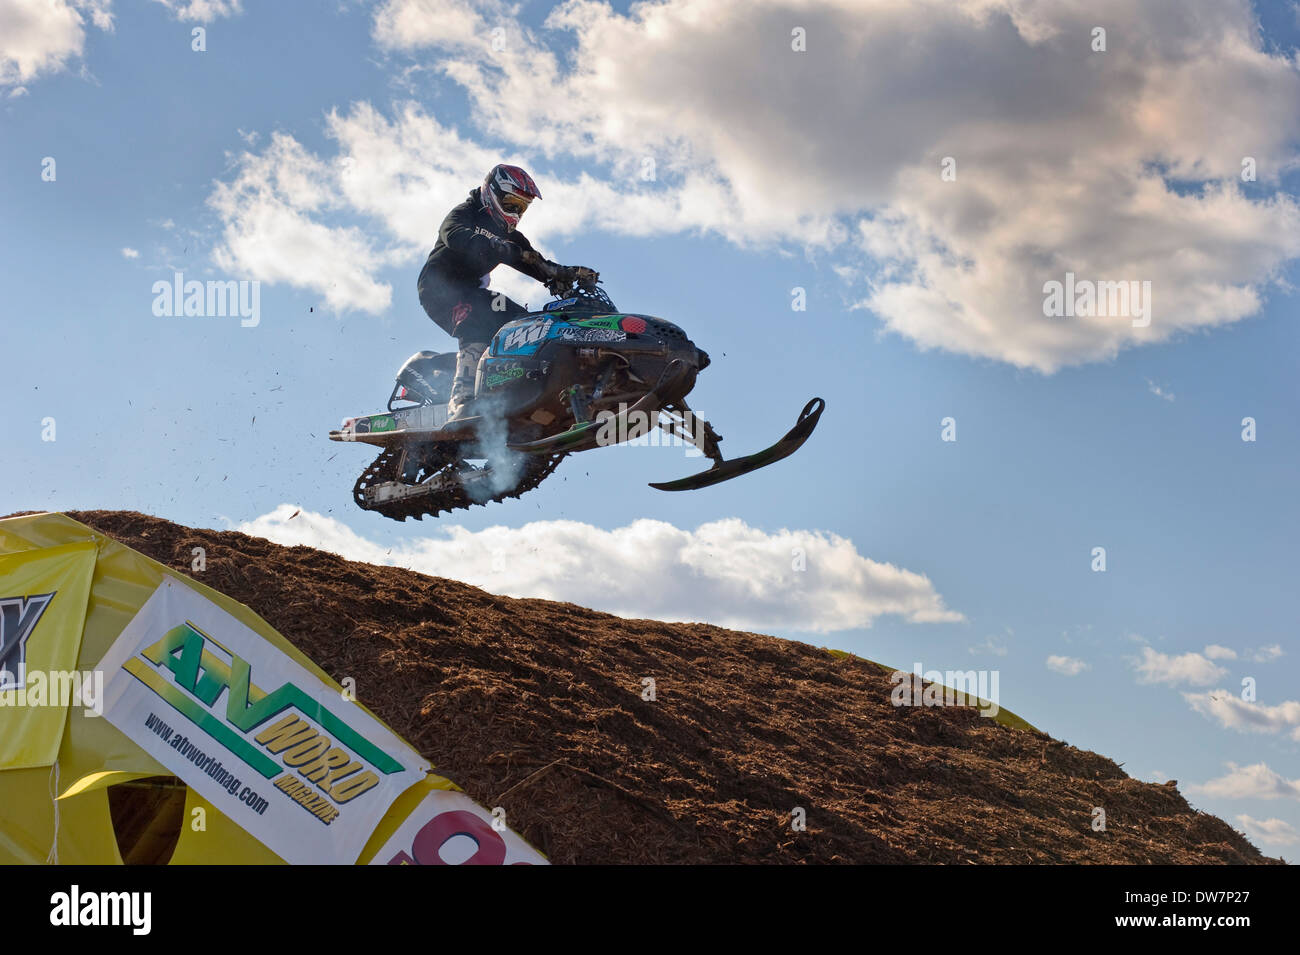 The Toronto International Snowmobile, ATV & Powersports Show - Stock Image